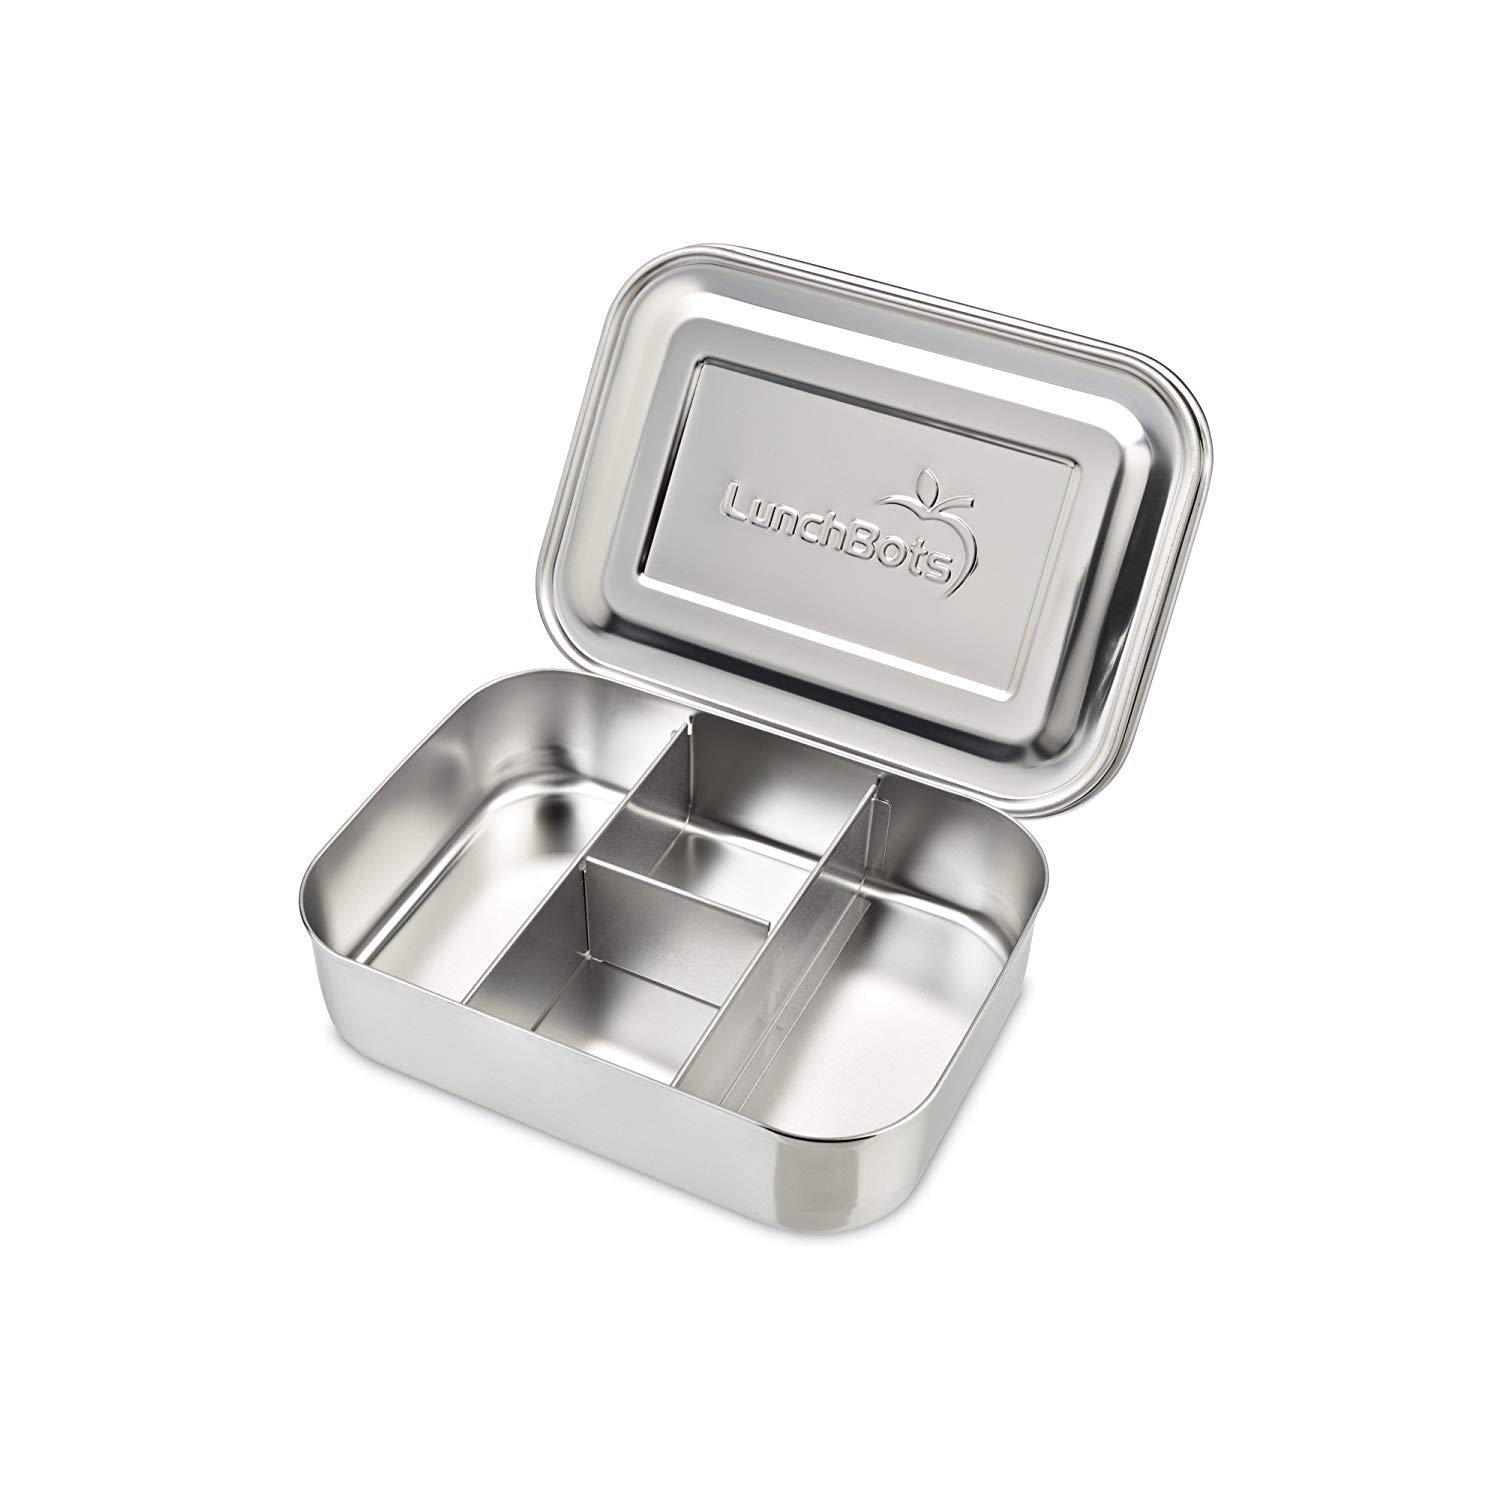 LunchBots Small Protein Packer Snack Container - Mini Stainless Steel Food Box With Portion Control Sections - Great for Nuts, Meat, Cheese and Finger Foods - Eco-Friendly, Dishwasher Safe and Durable by LunchBots